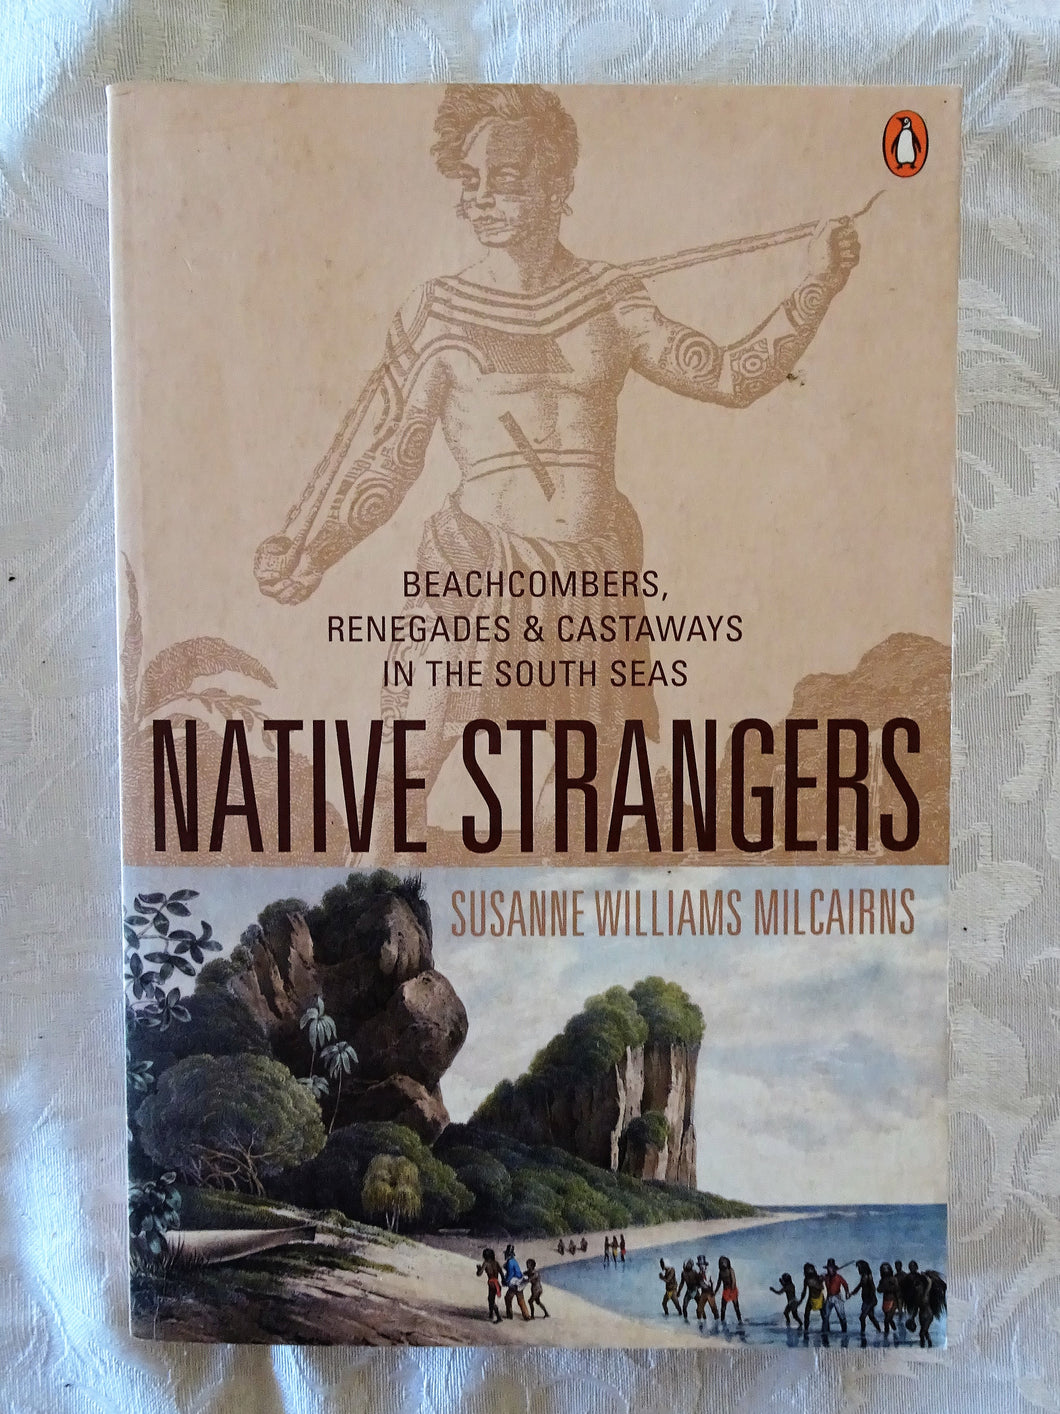 Native Strangers by Susanne Williams Milcairns